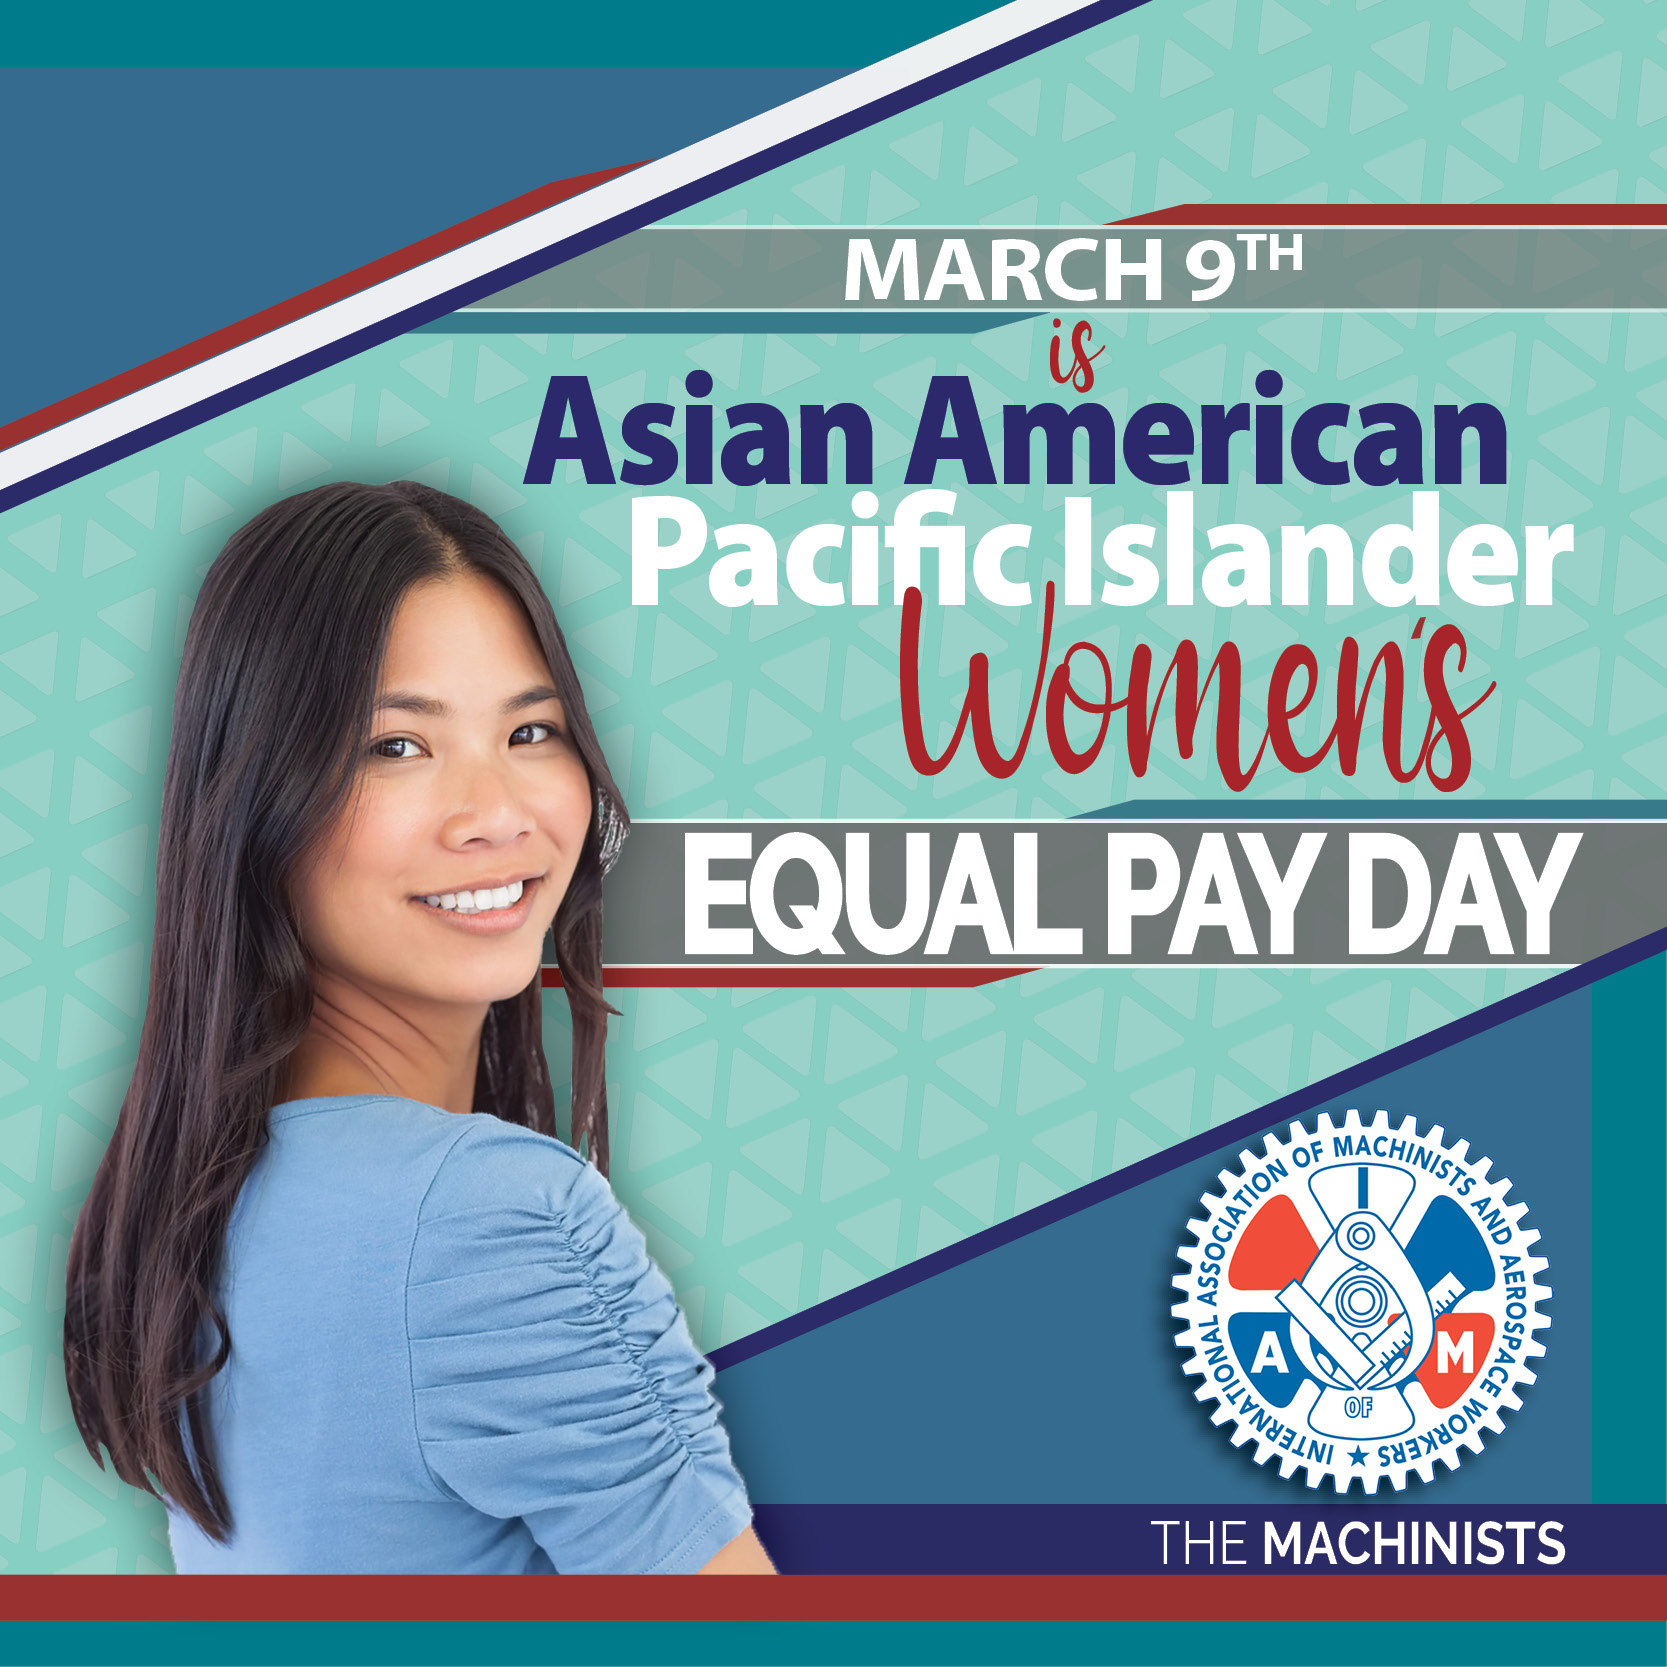 Asian American/Pacific Islander Women's Equal Pay Day is March 9th